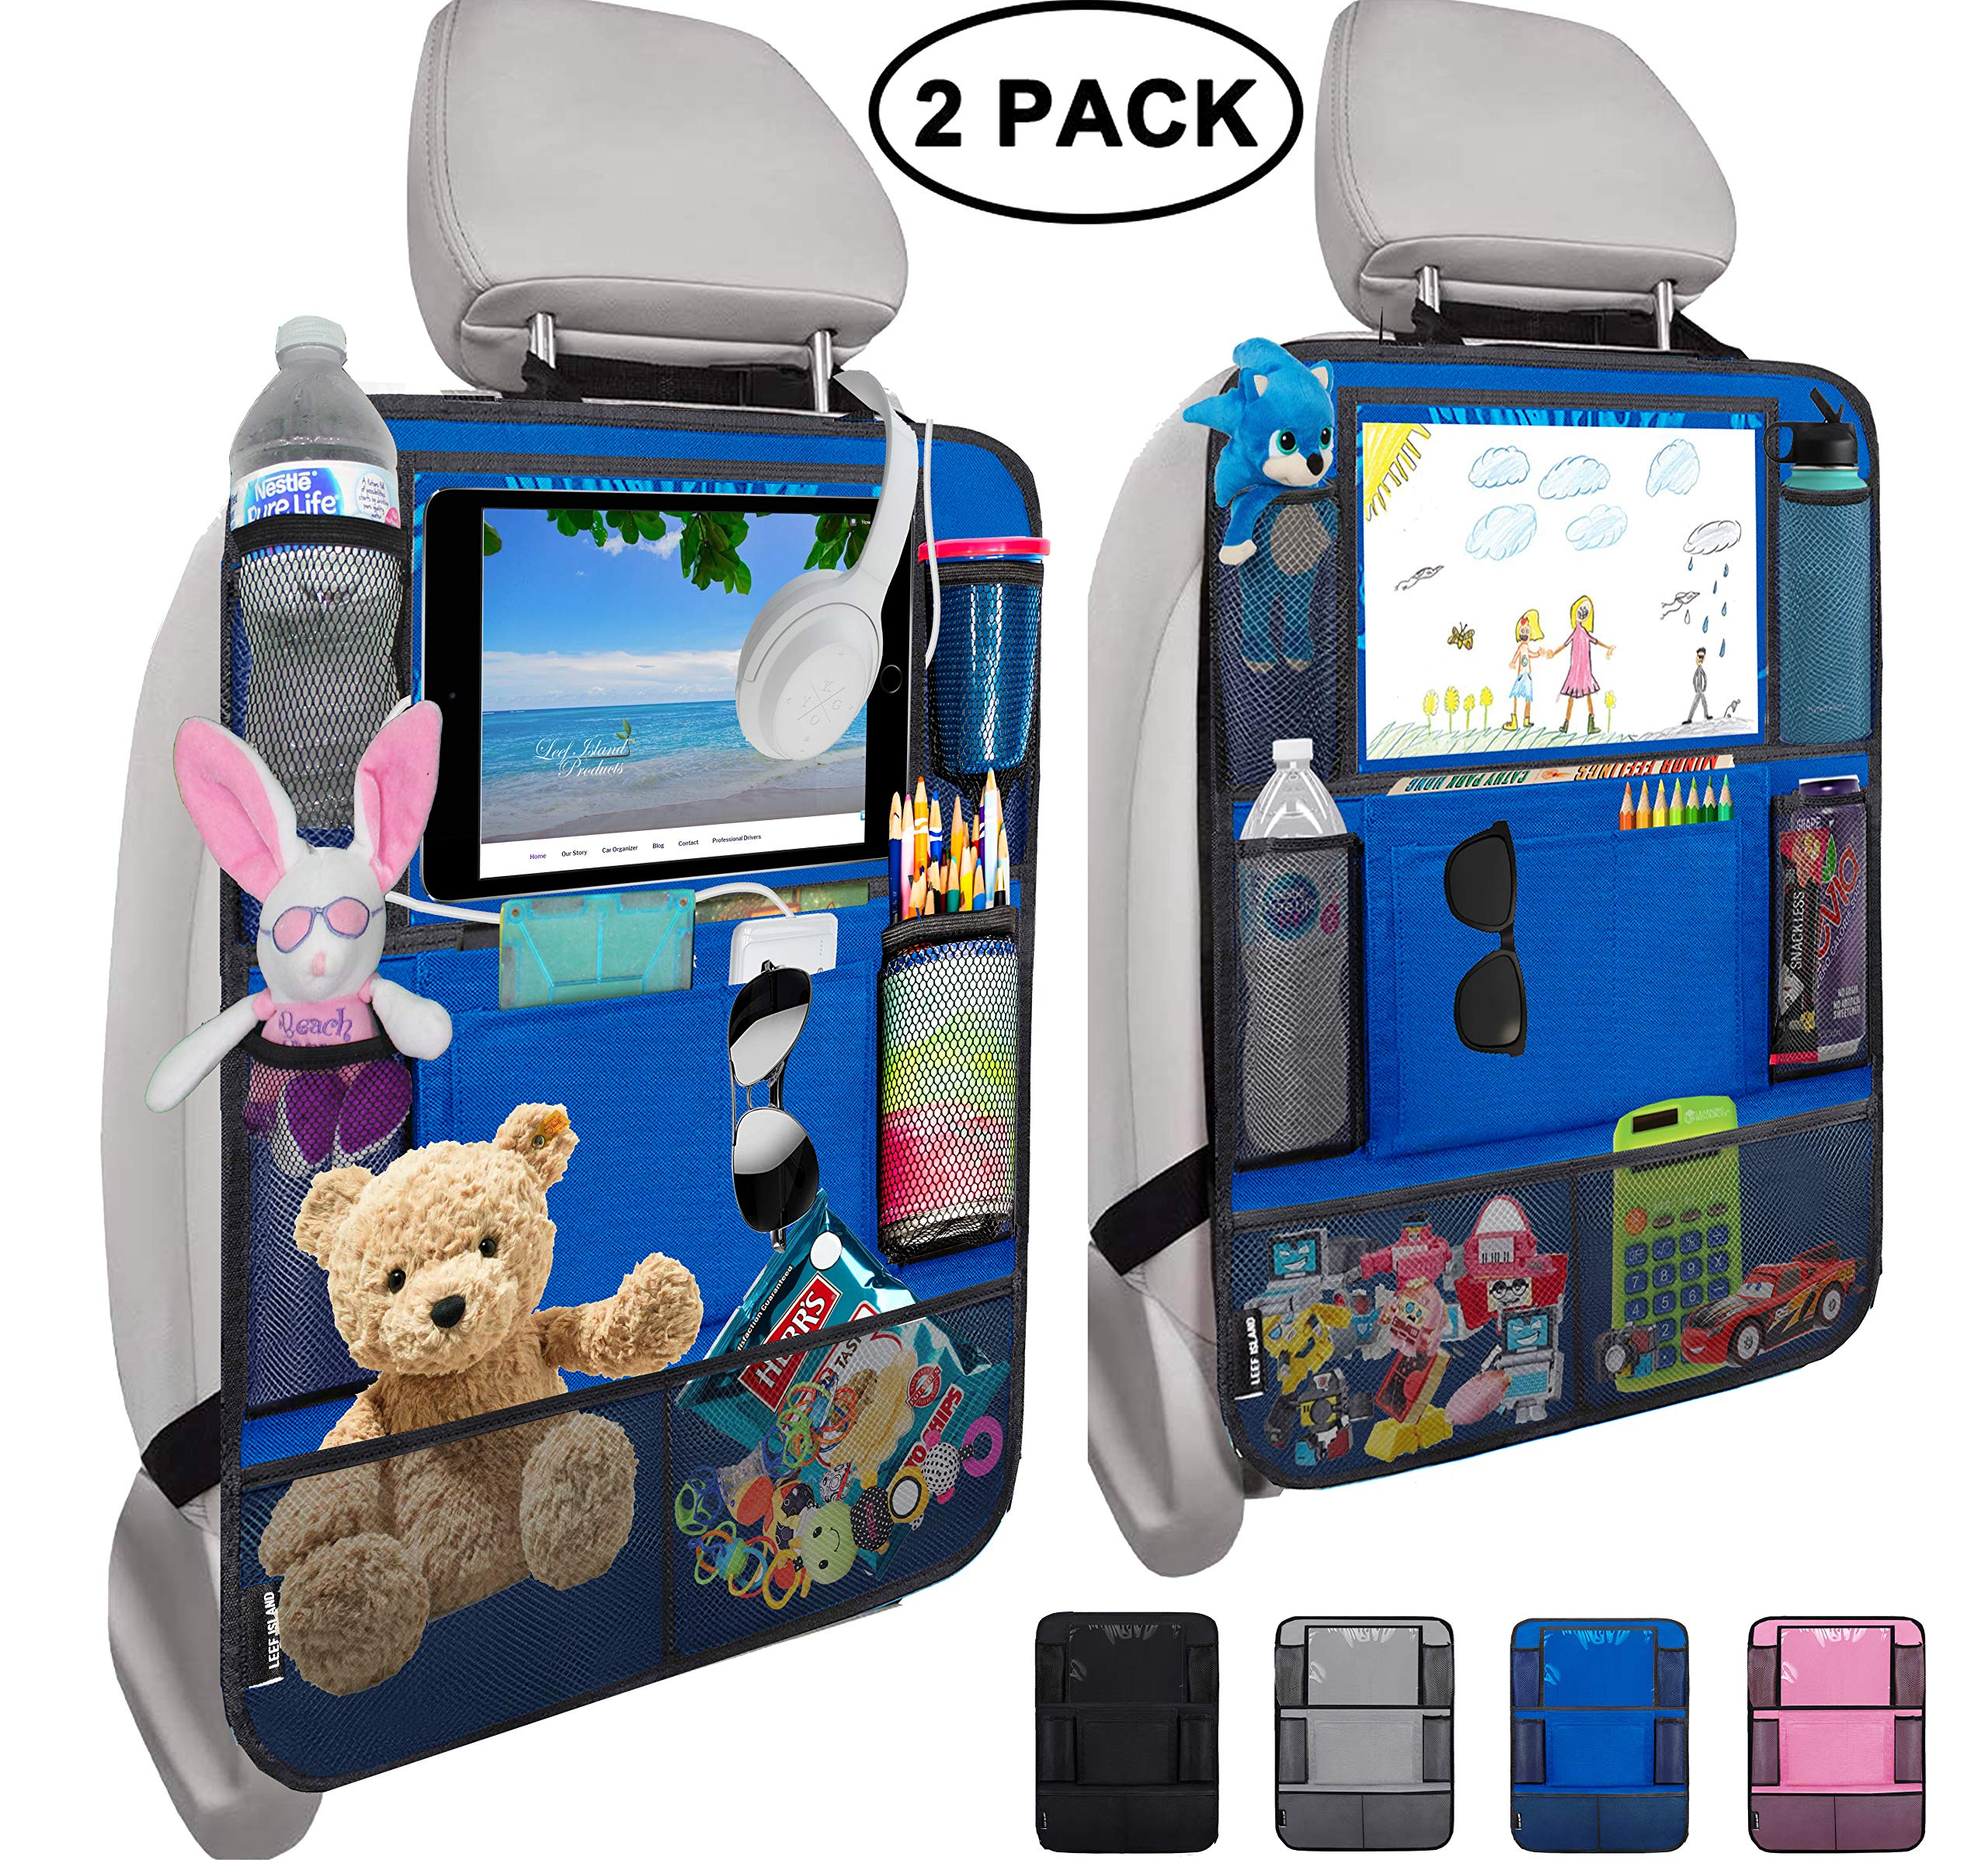 """Leef Island Backseat Car Organizer – 10"""" Tablet Holder with 2 Cable Slots, 9 Storage Pockets, Seat Protector Kick Mats for Kids and Adults, Travel Accessories (2 Pack - Blue)"""